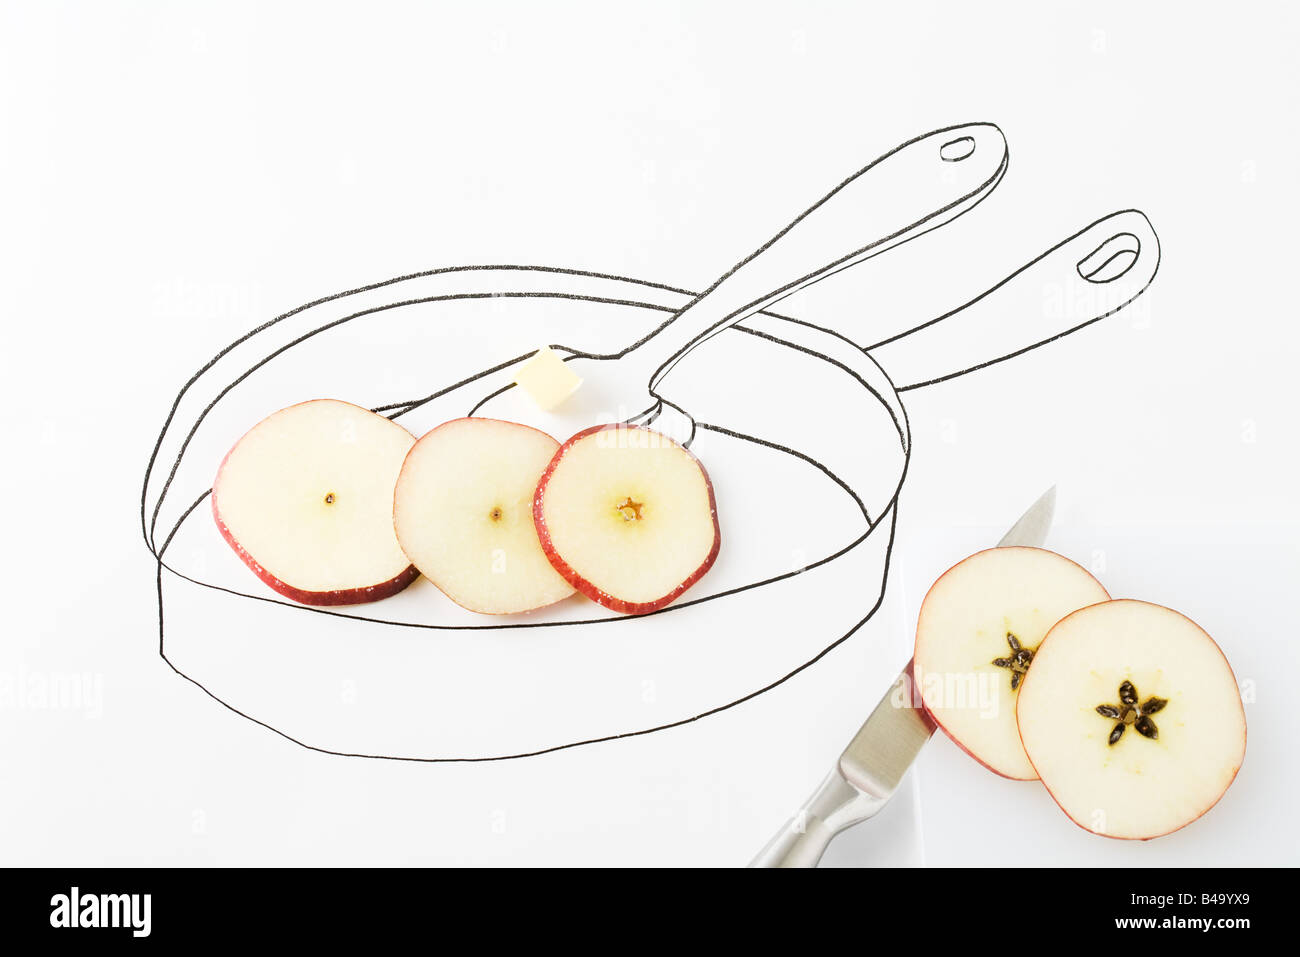 Apple slices and butter in drawing of pan - Stock Image